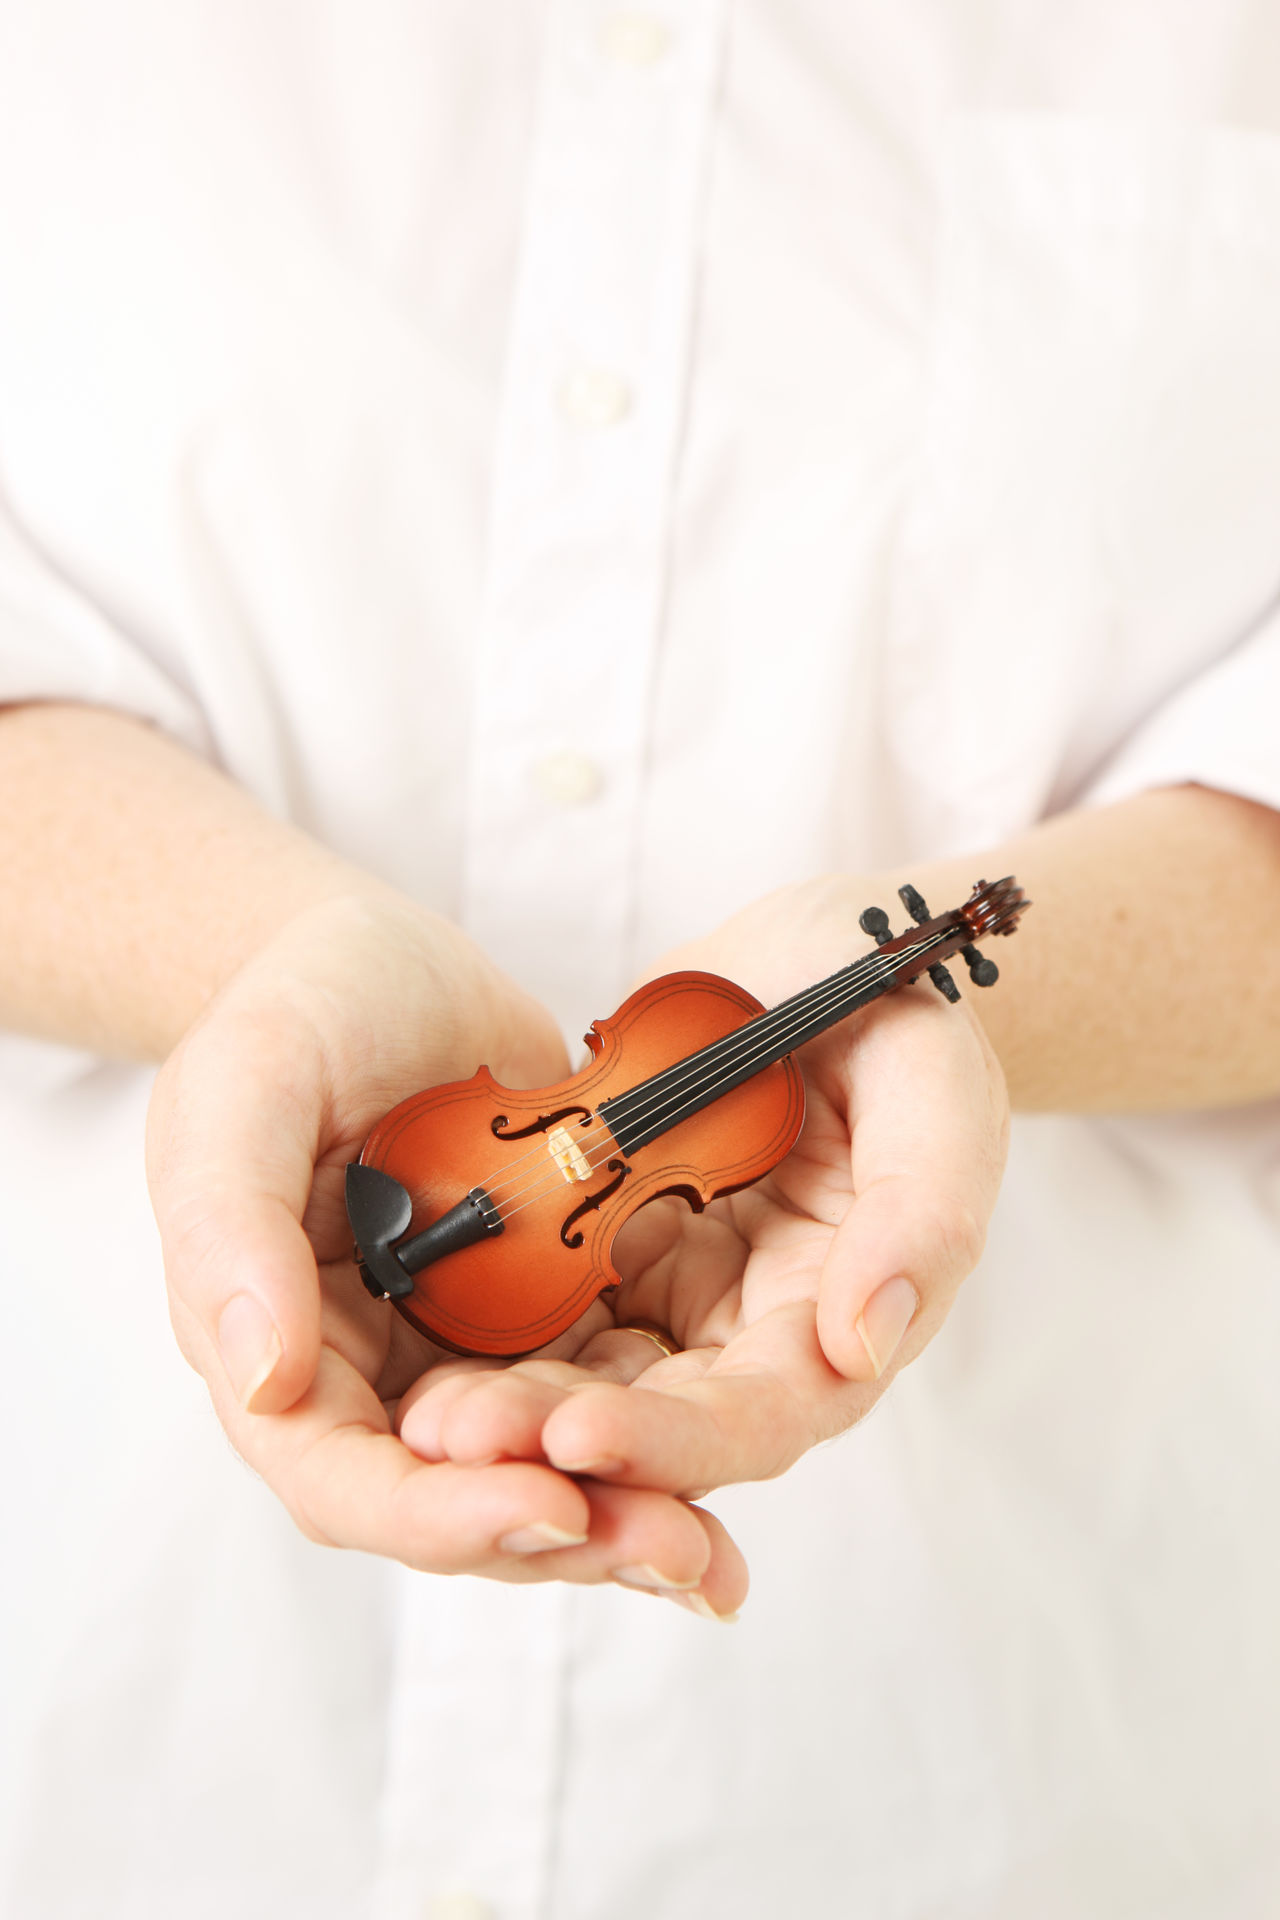 Violin Lessons Class Close-up Day Education High Key Holding Human Body Part Human Hand Indoors  Miniature Music Musical Instrument Musical Instruments Musician One Person People String Instrument Toy Violin Violin Lesson Violin Practice White Background